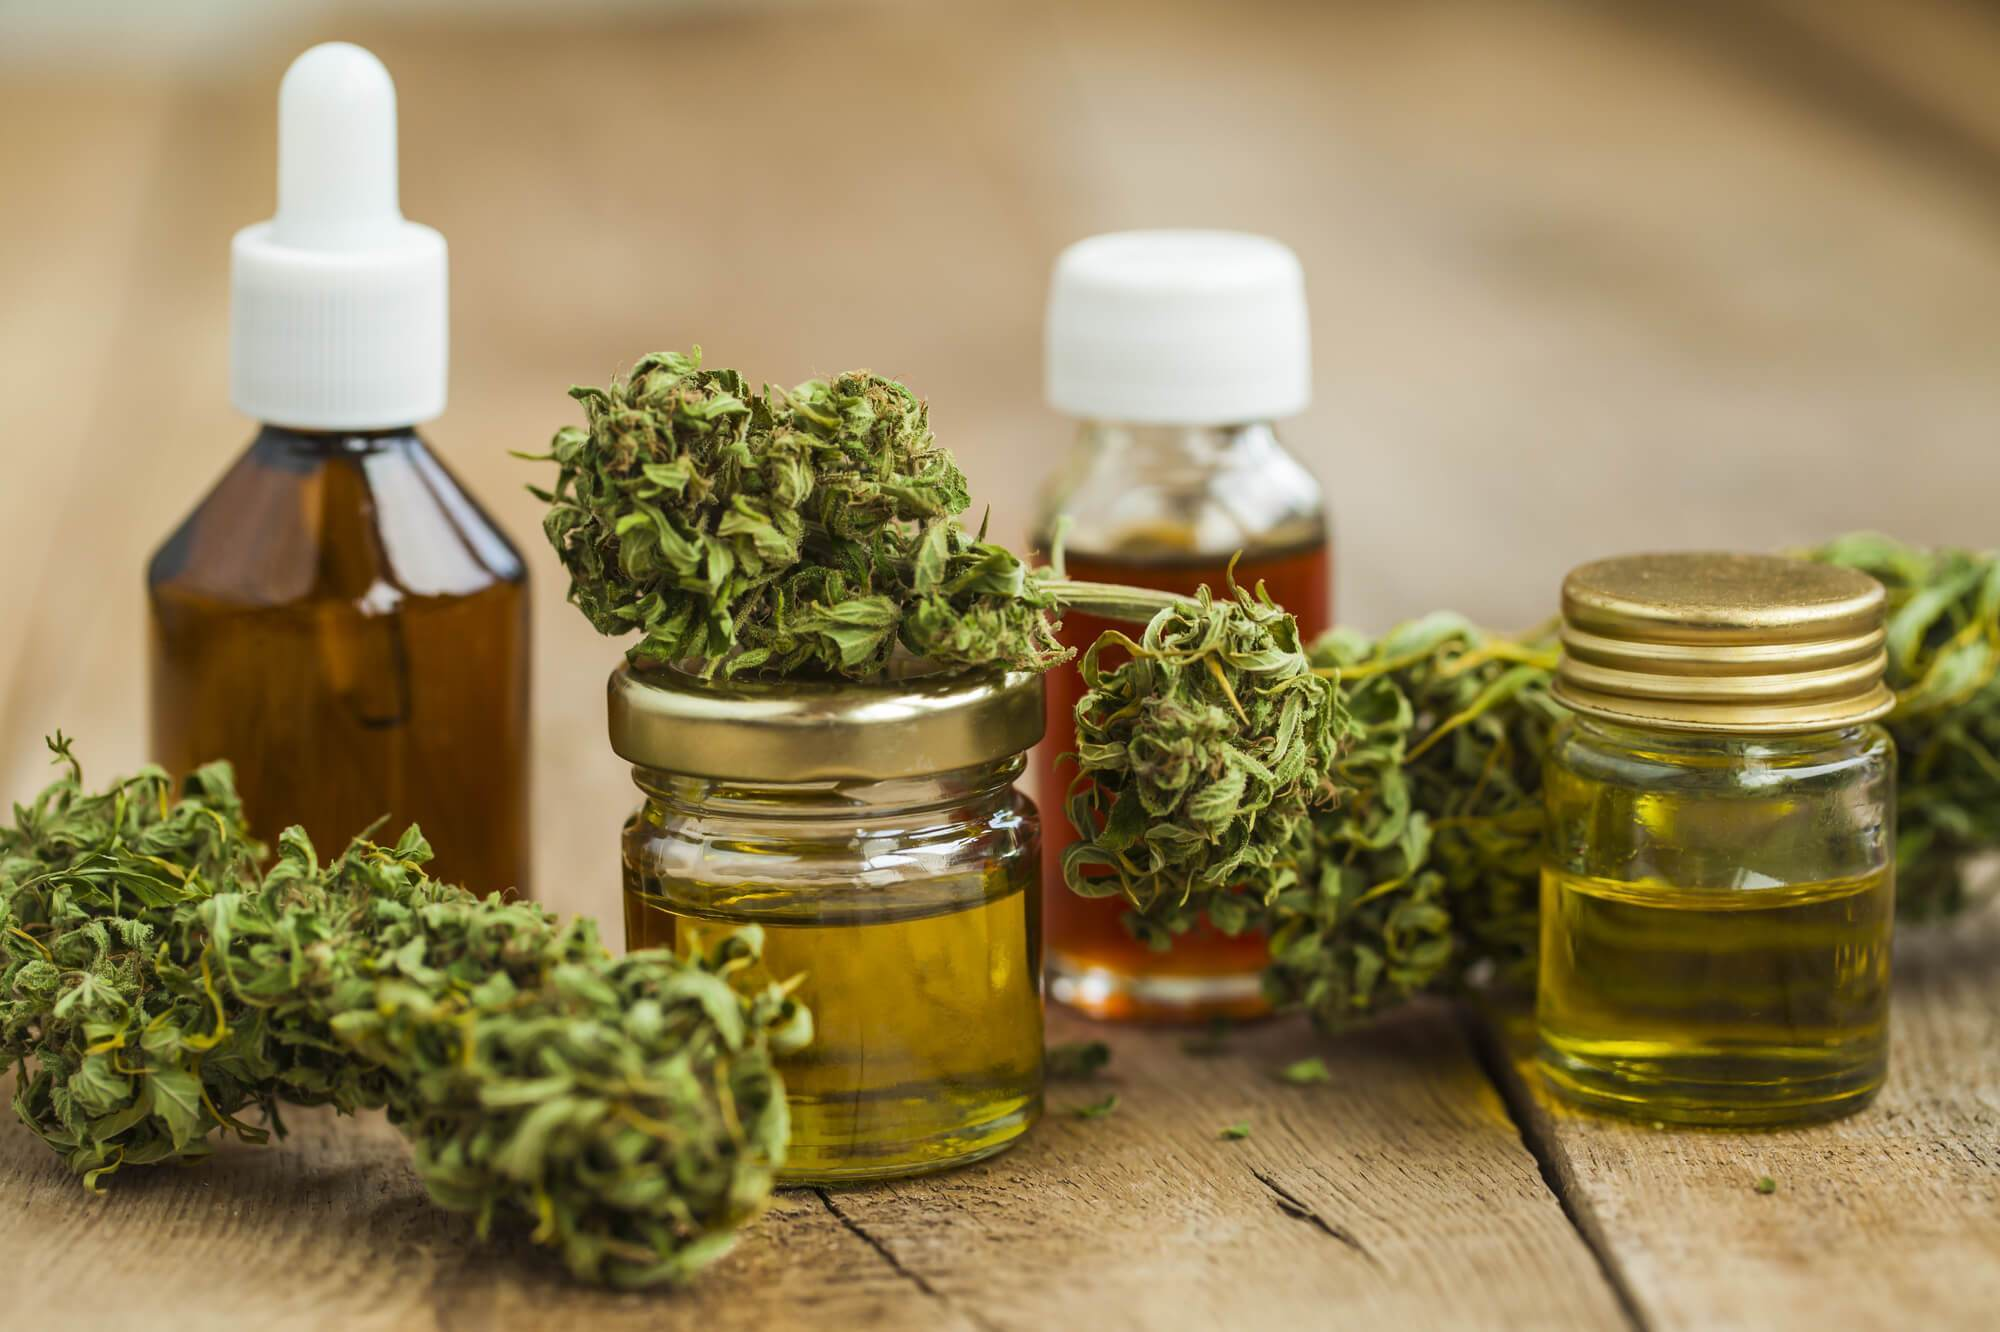 Are You Using a Safe CBD Oil